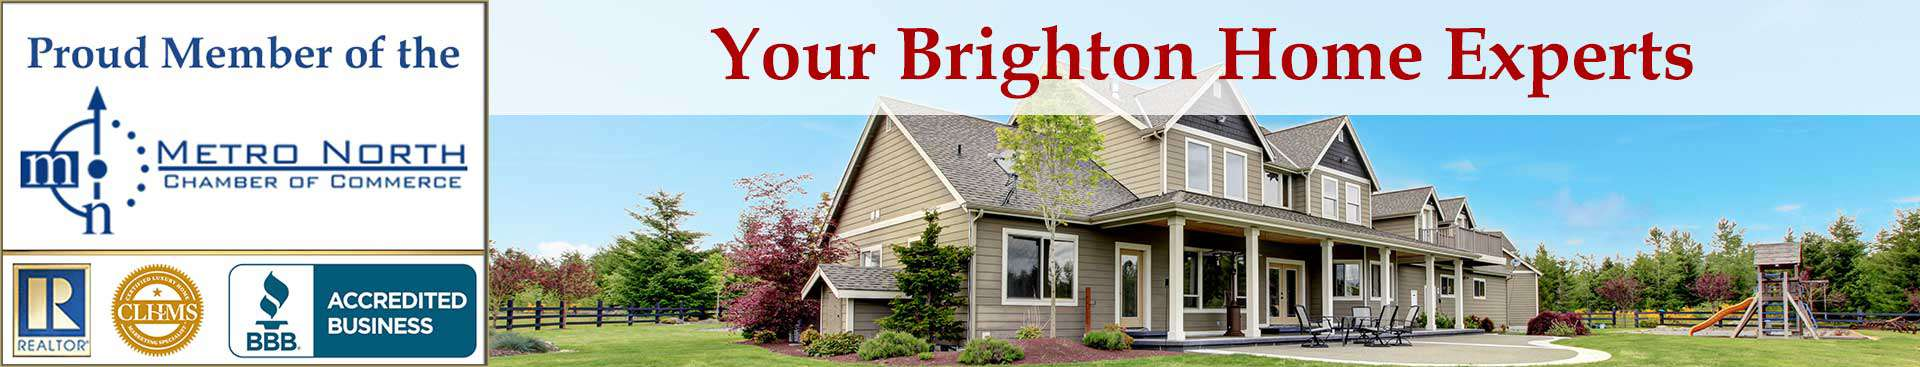 Brighton CO Organizational Banner